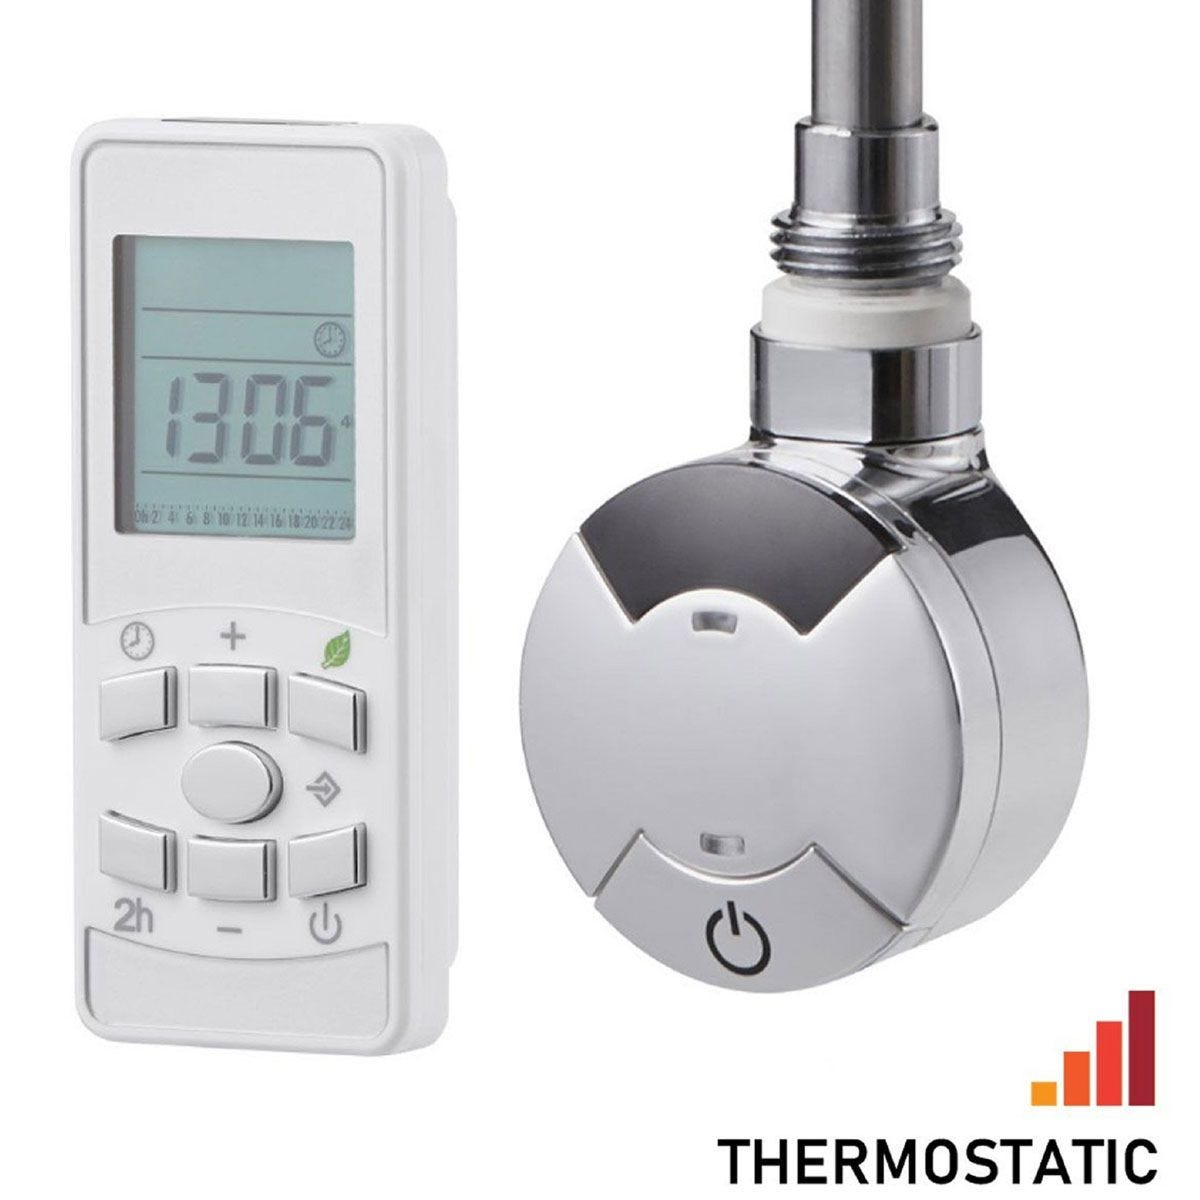 Heating Style Timed Remote Control Thermostatic 1000W Element + T-Piece - Chrome